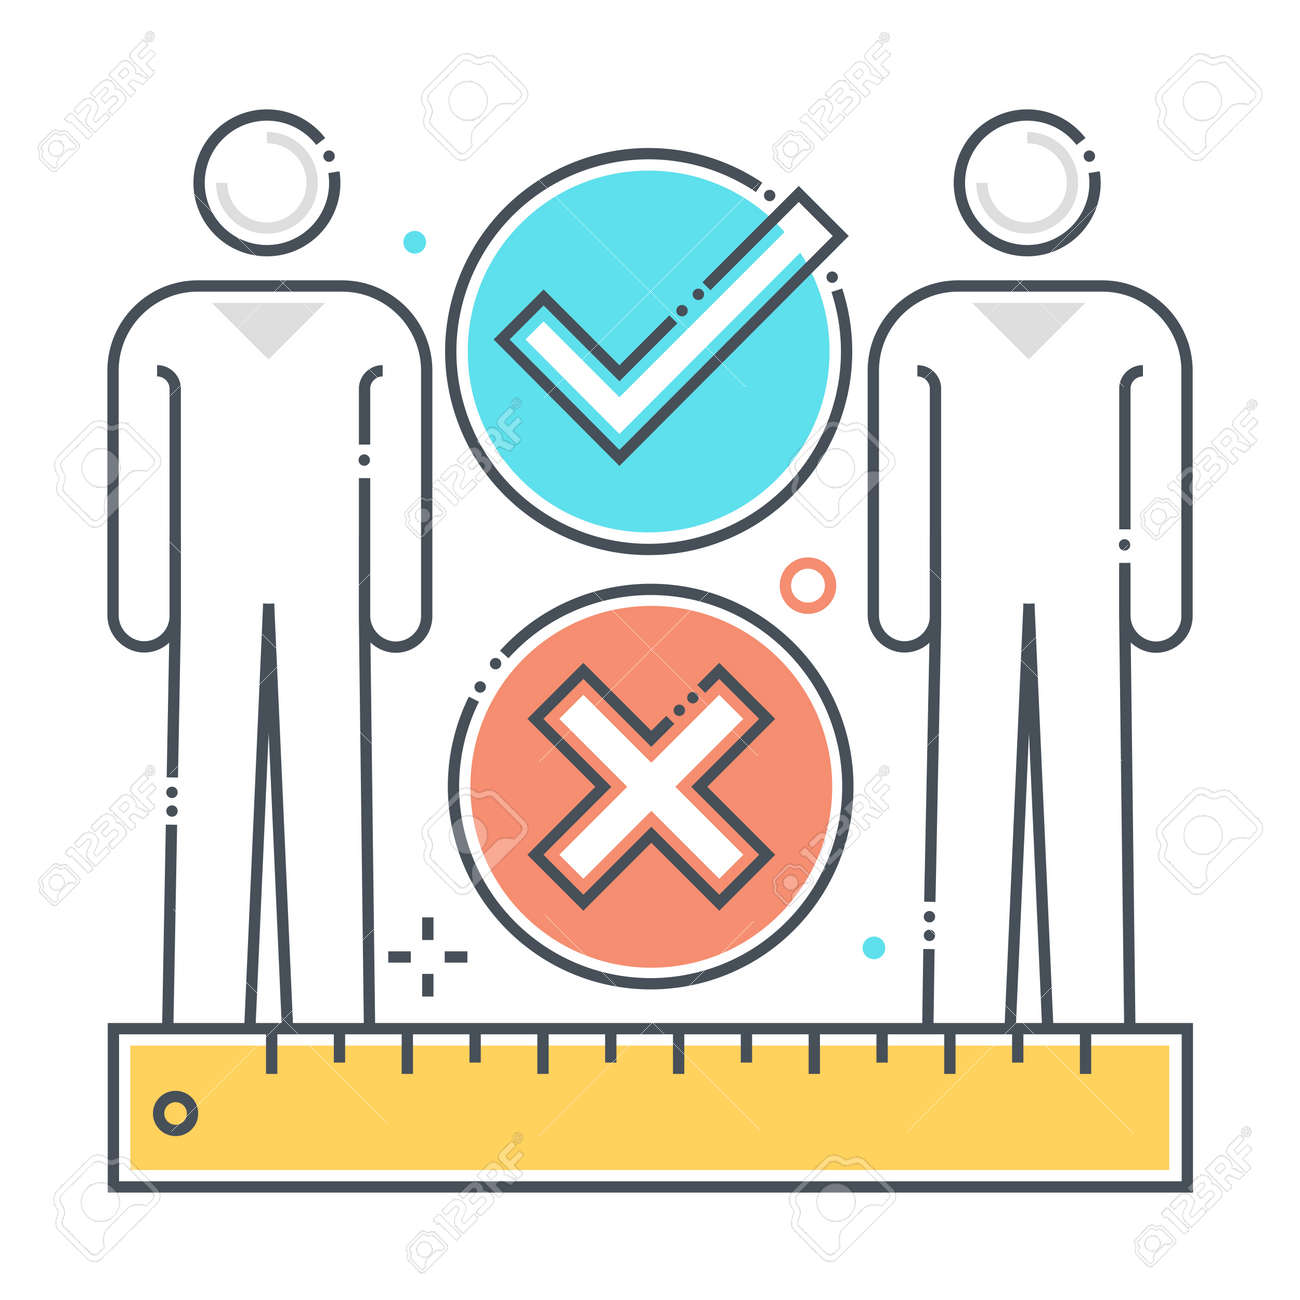 Social distance related color line vector icon, illustration. The icon is about meter, feet, ruler, protection, corona virus, contamination, epidemic. The composition is infinitely scalable. - 163698270